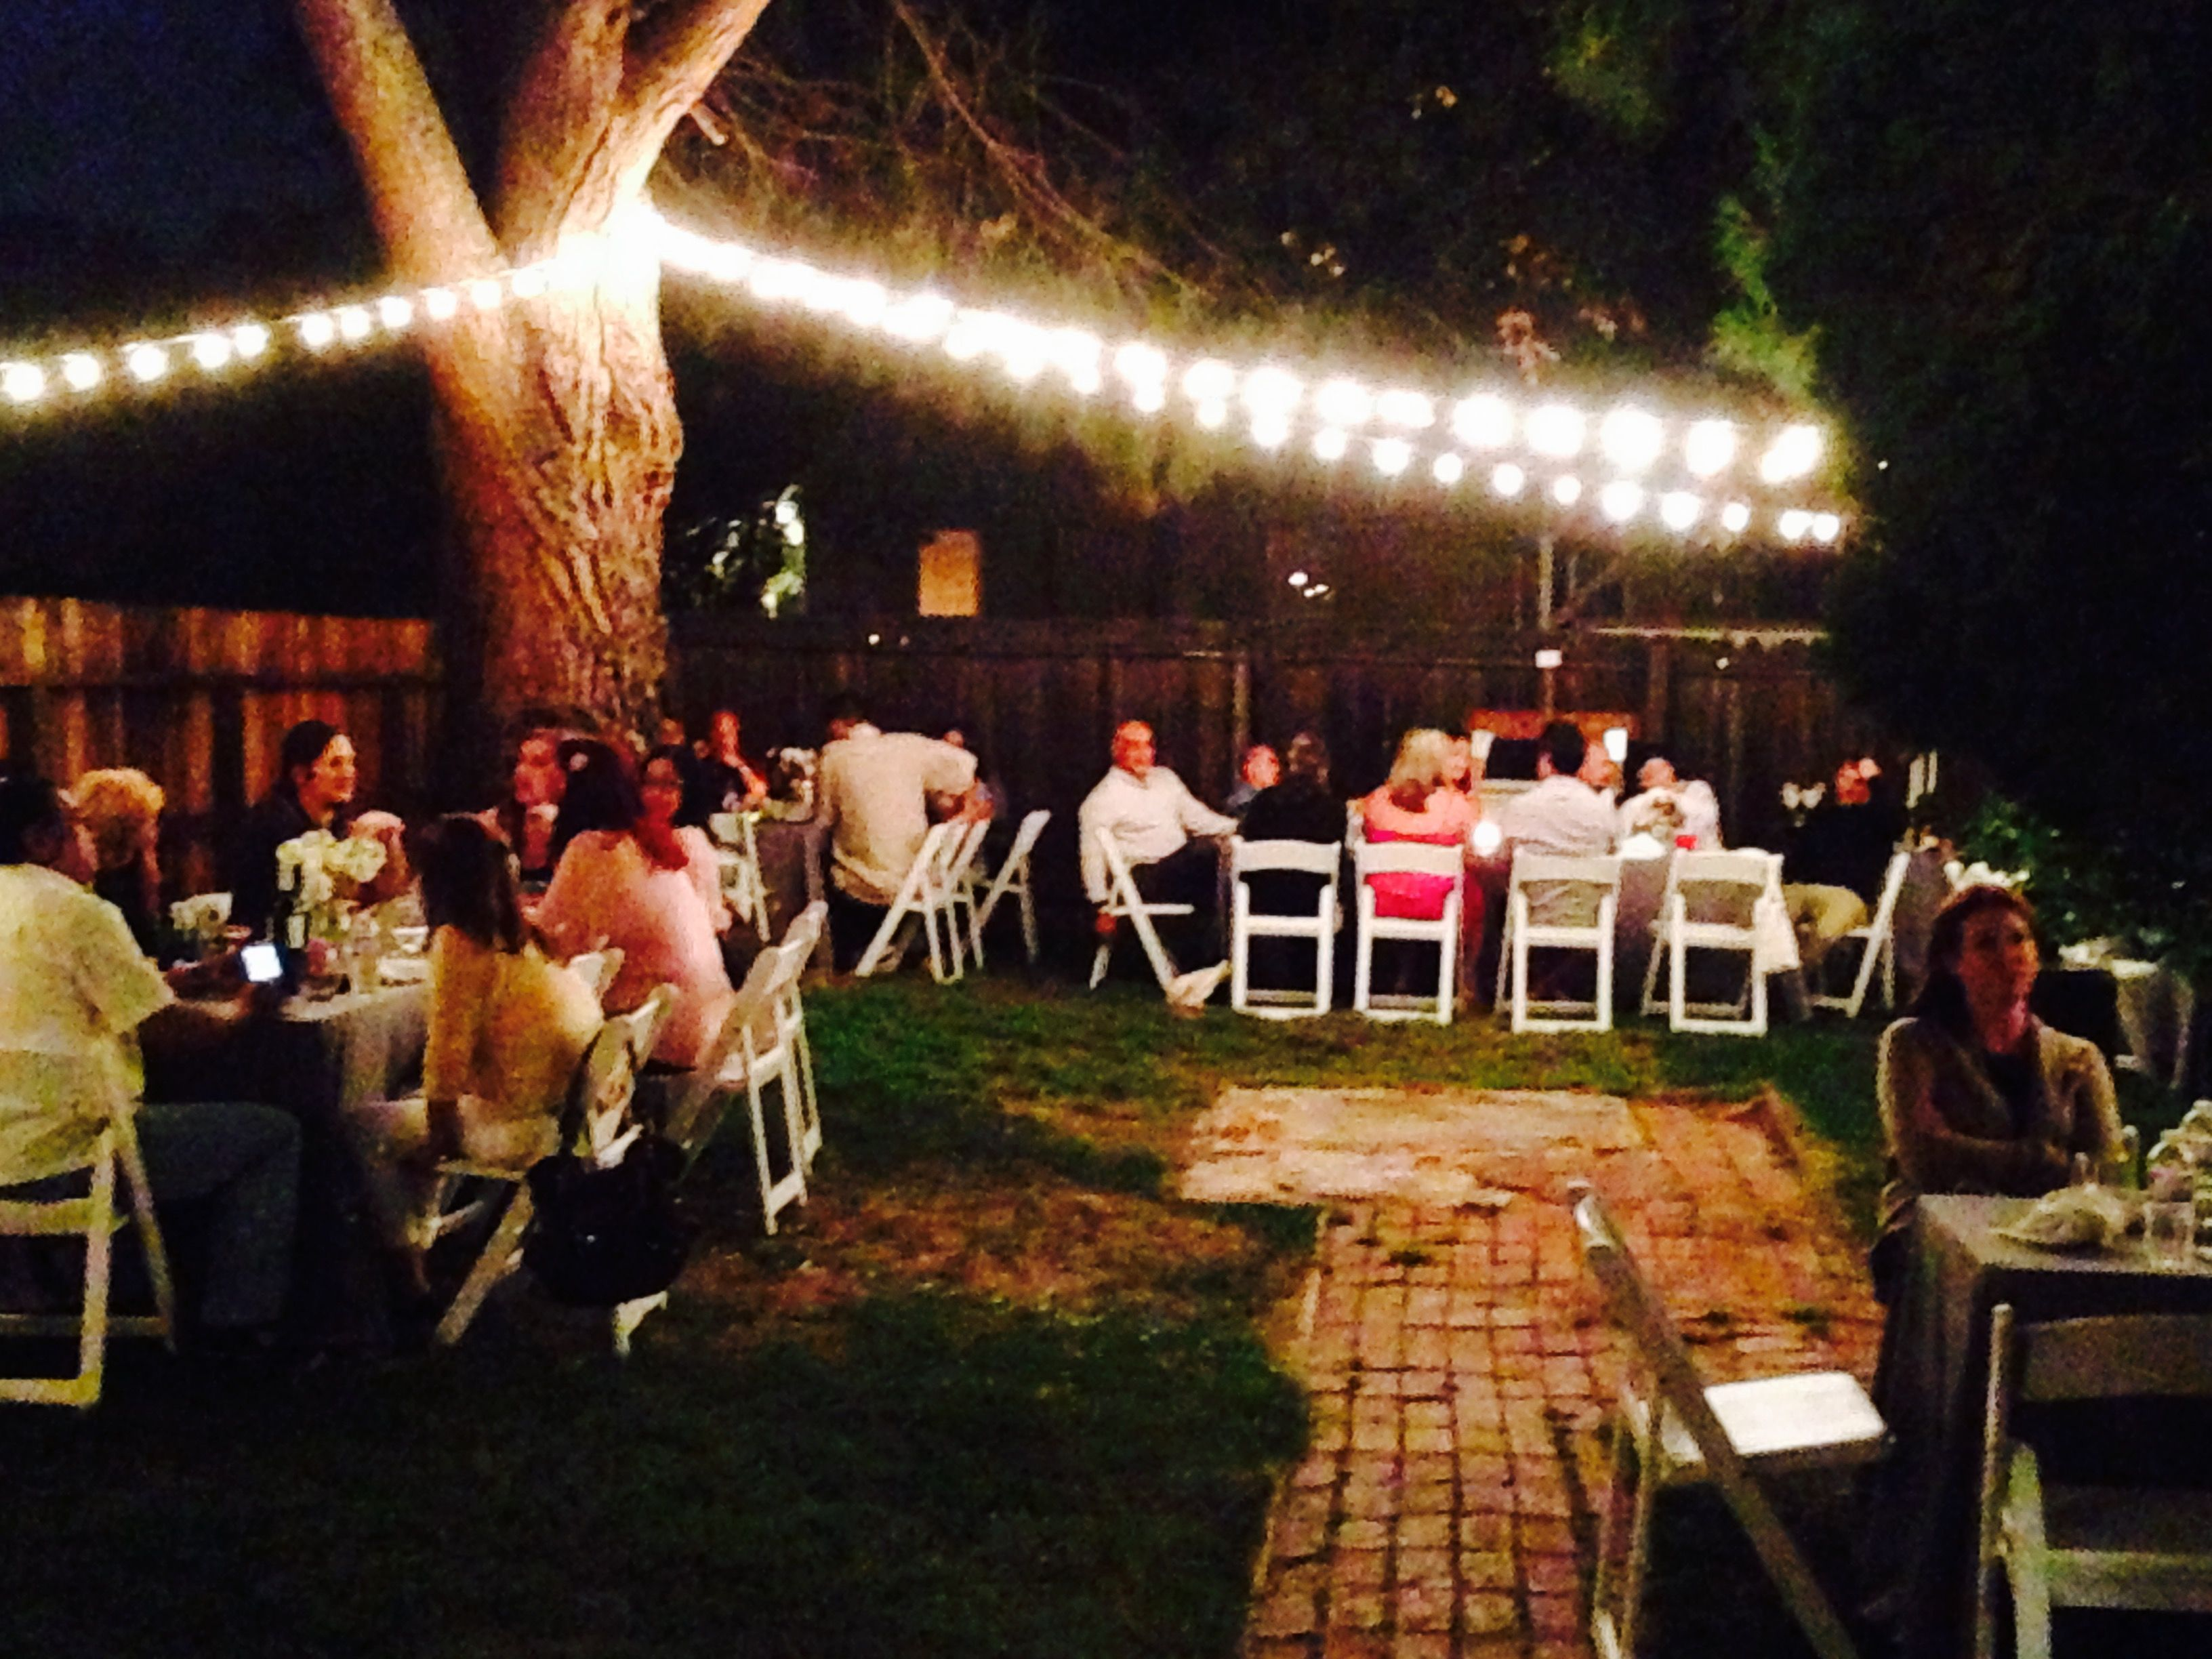 Small Outdoor Dinner Party A Few Tables, Chairs And Linens